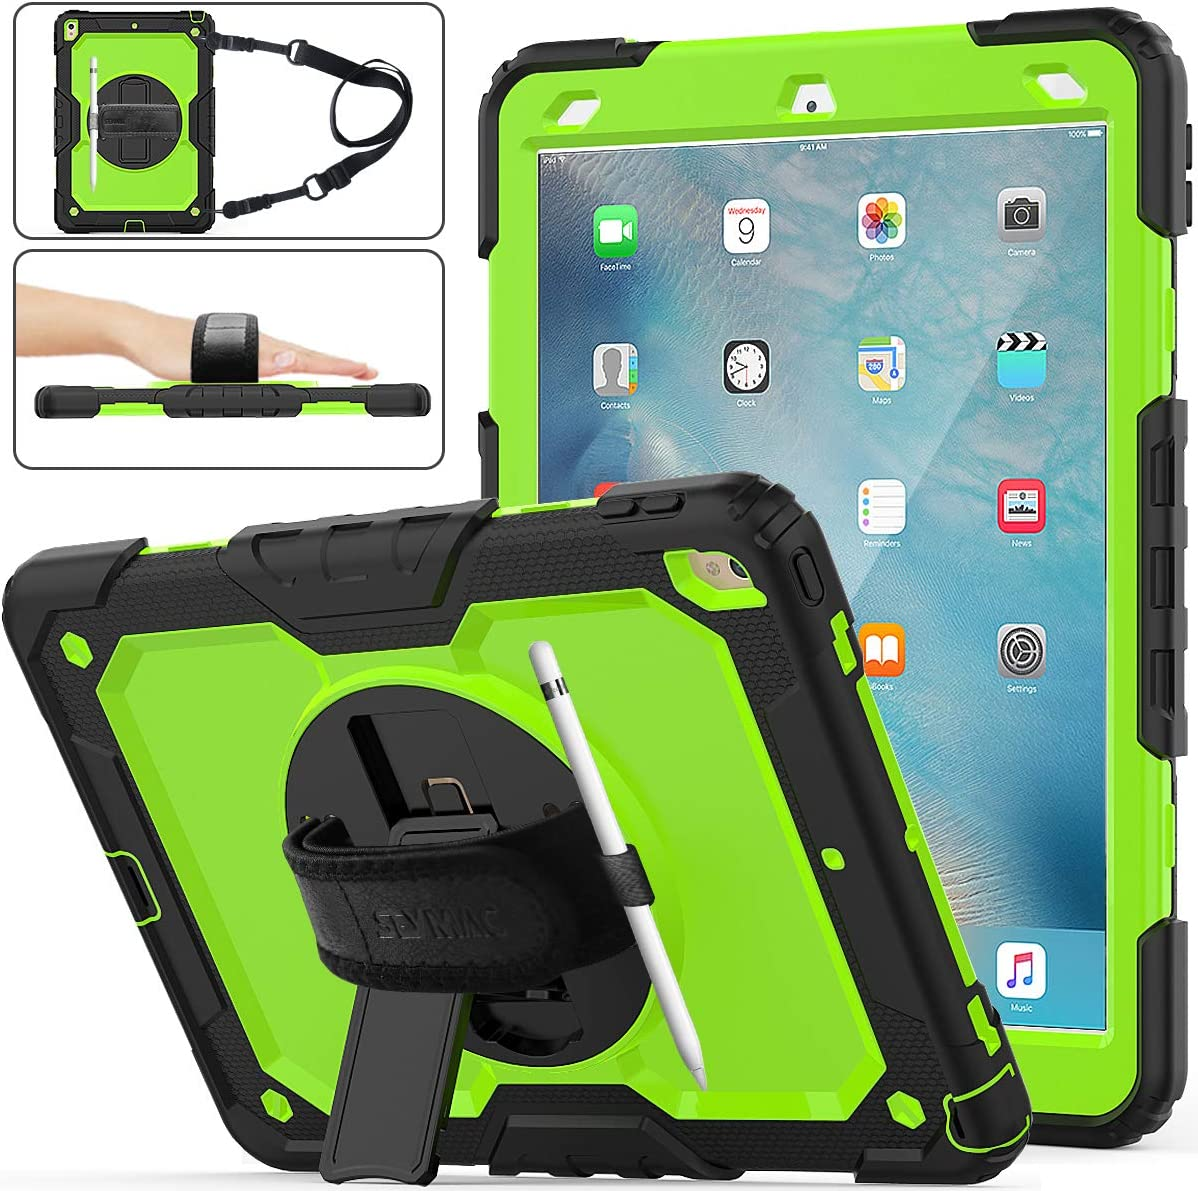 "iPad Air 3 Case 2019, SEYMAC Stock [Full-Body] Drop Proof &Shockproof Armor Case with 360 Rotating Stand [Pencil Holder] Hand Strap for iPad Air 3 10.5"" 2019/iPad Pro 10.5"" 2017(Green+Black)"